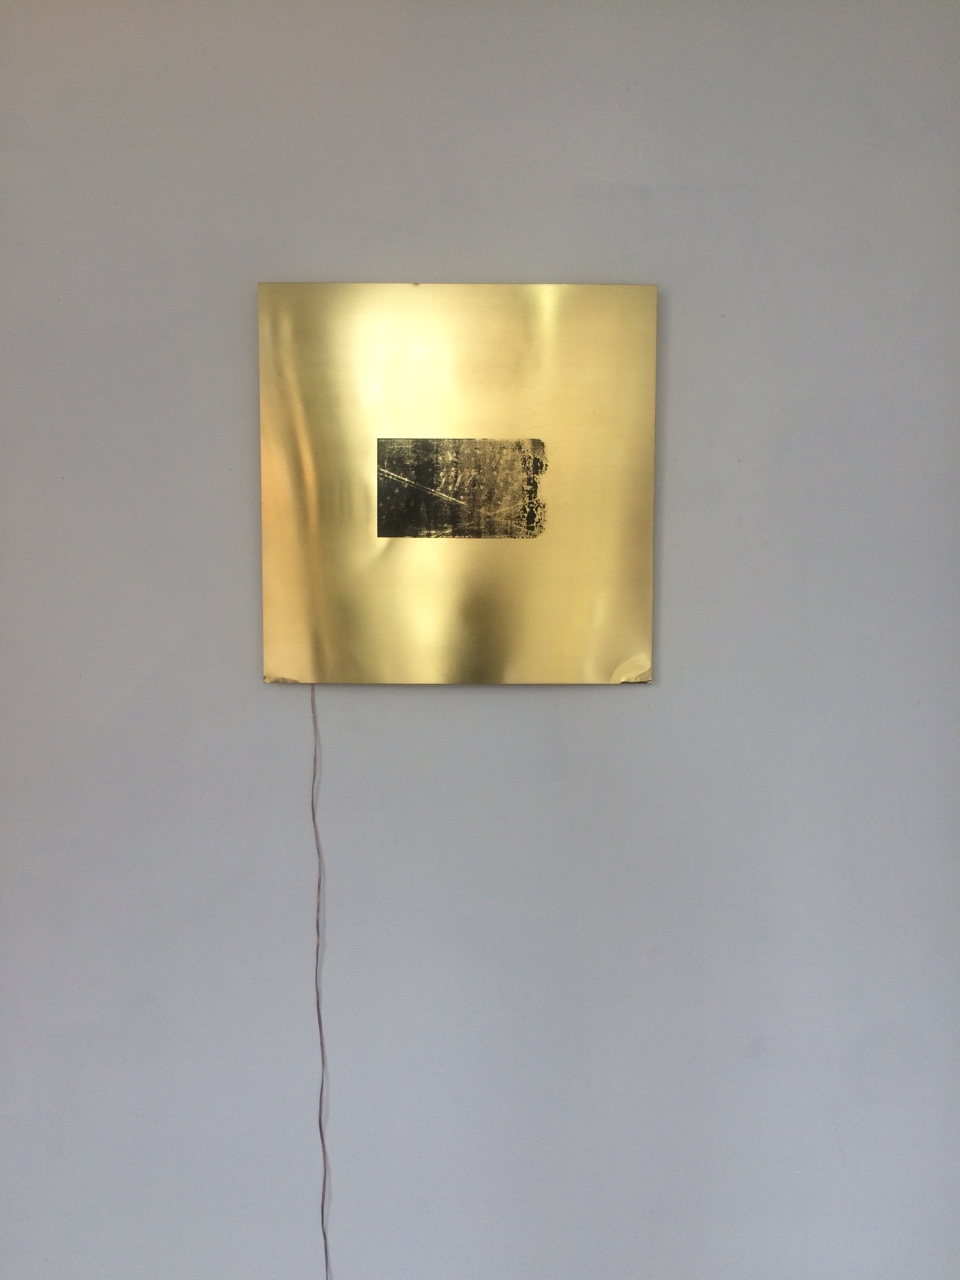 Alejandro T. Acierto, Taft's own, 2016 Screenprint on brass, surface mount transducer Part of Focusing (Vol. II), a solo show at Corner in Chicago. On view until November 15, 2016!